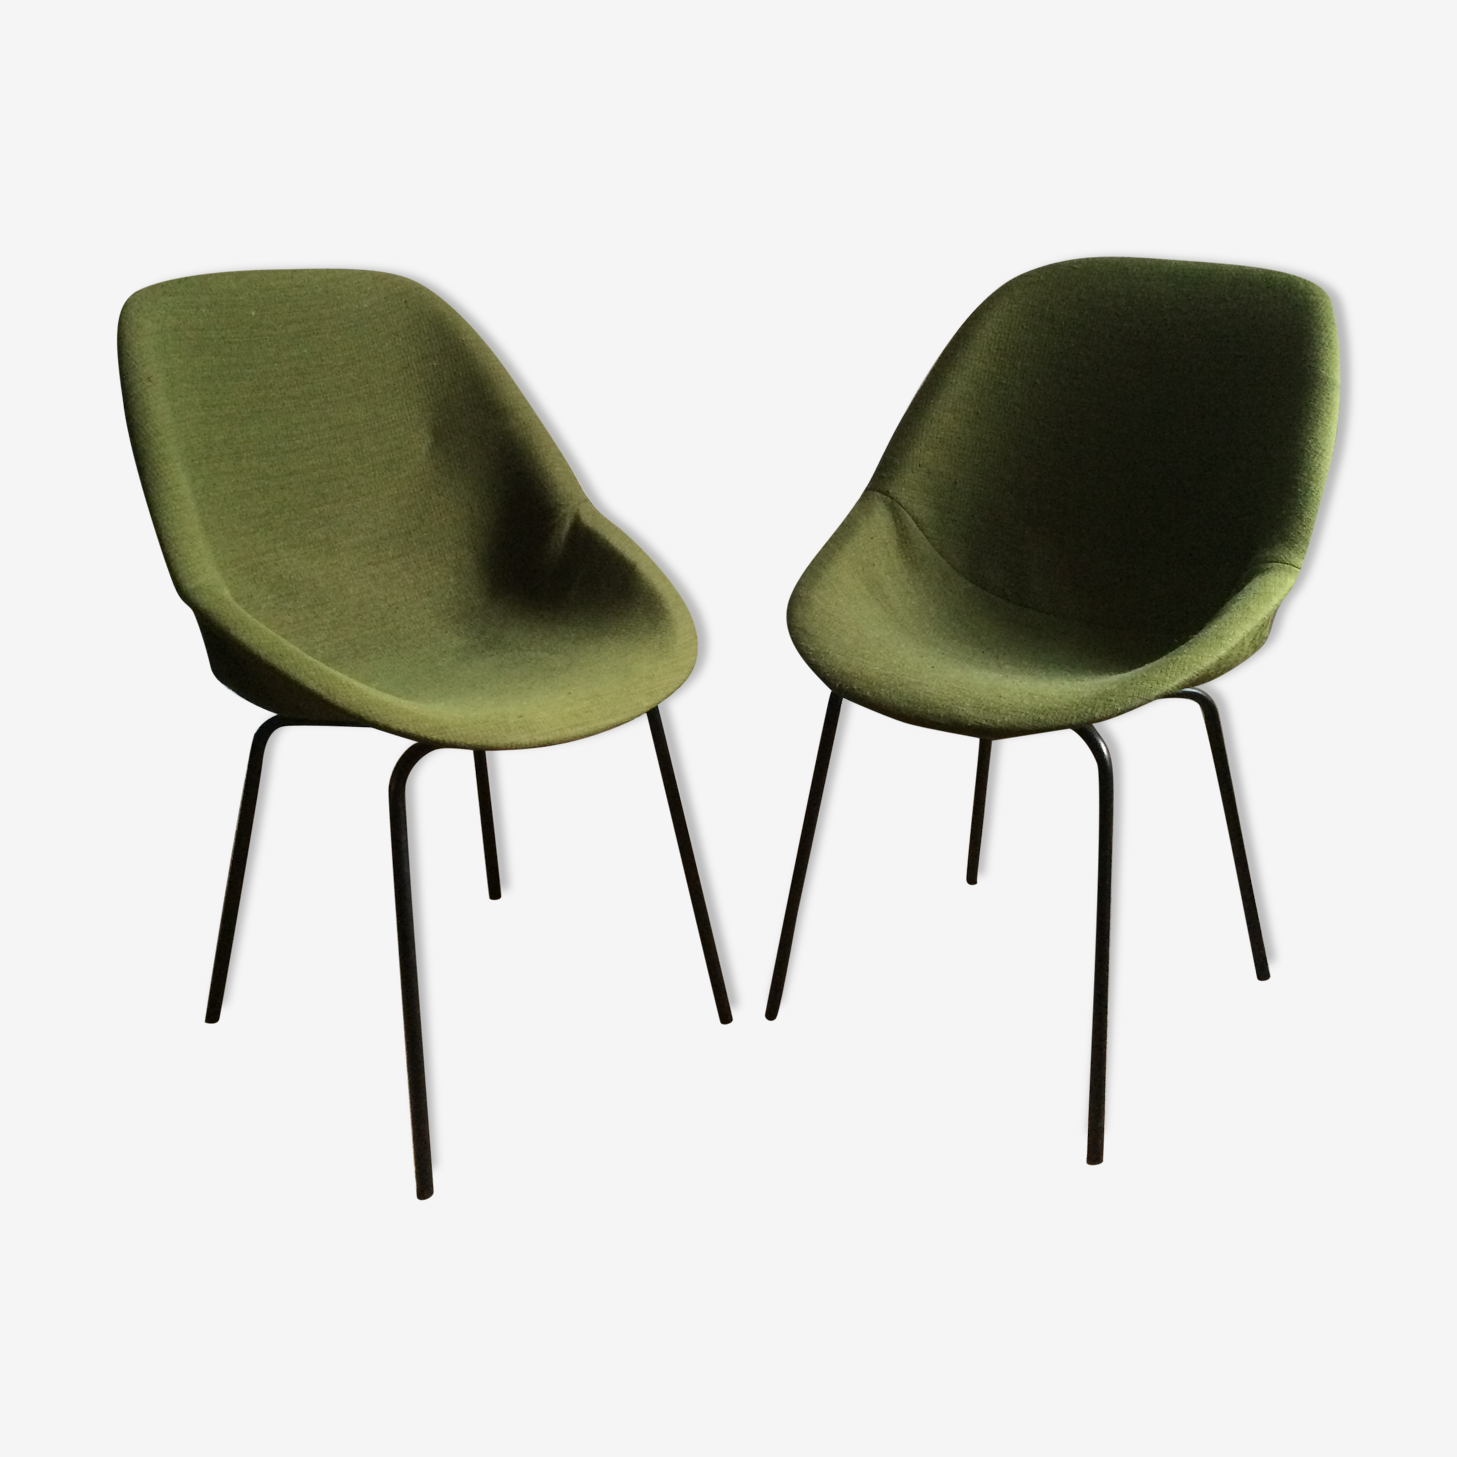 Pair of chairs design Geneviève Dangles and Christian Defrance. 1950 s